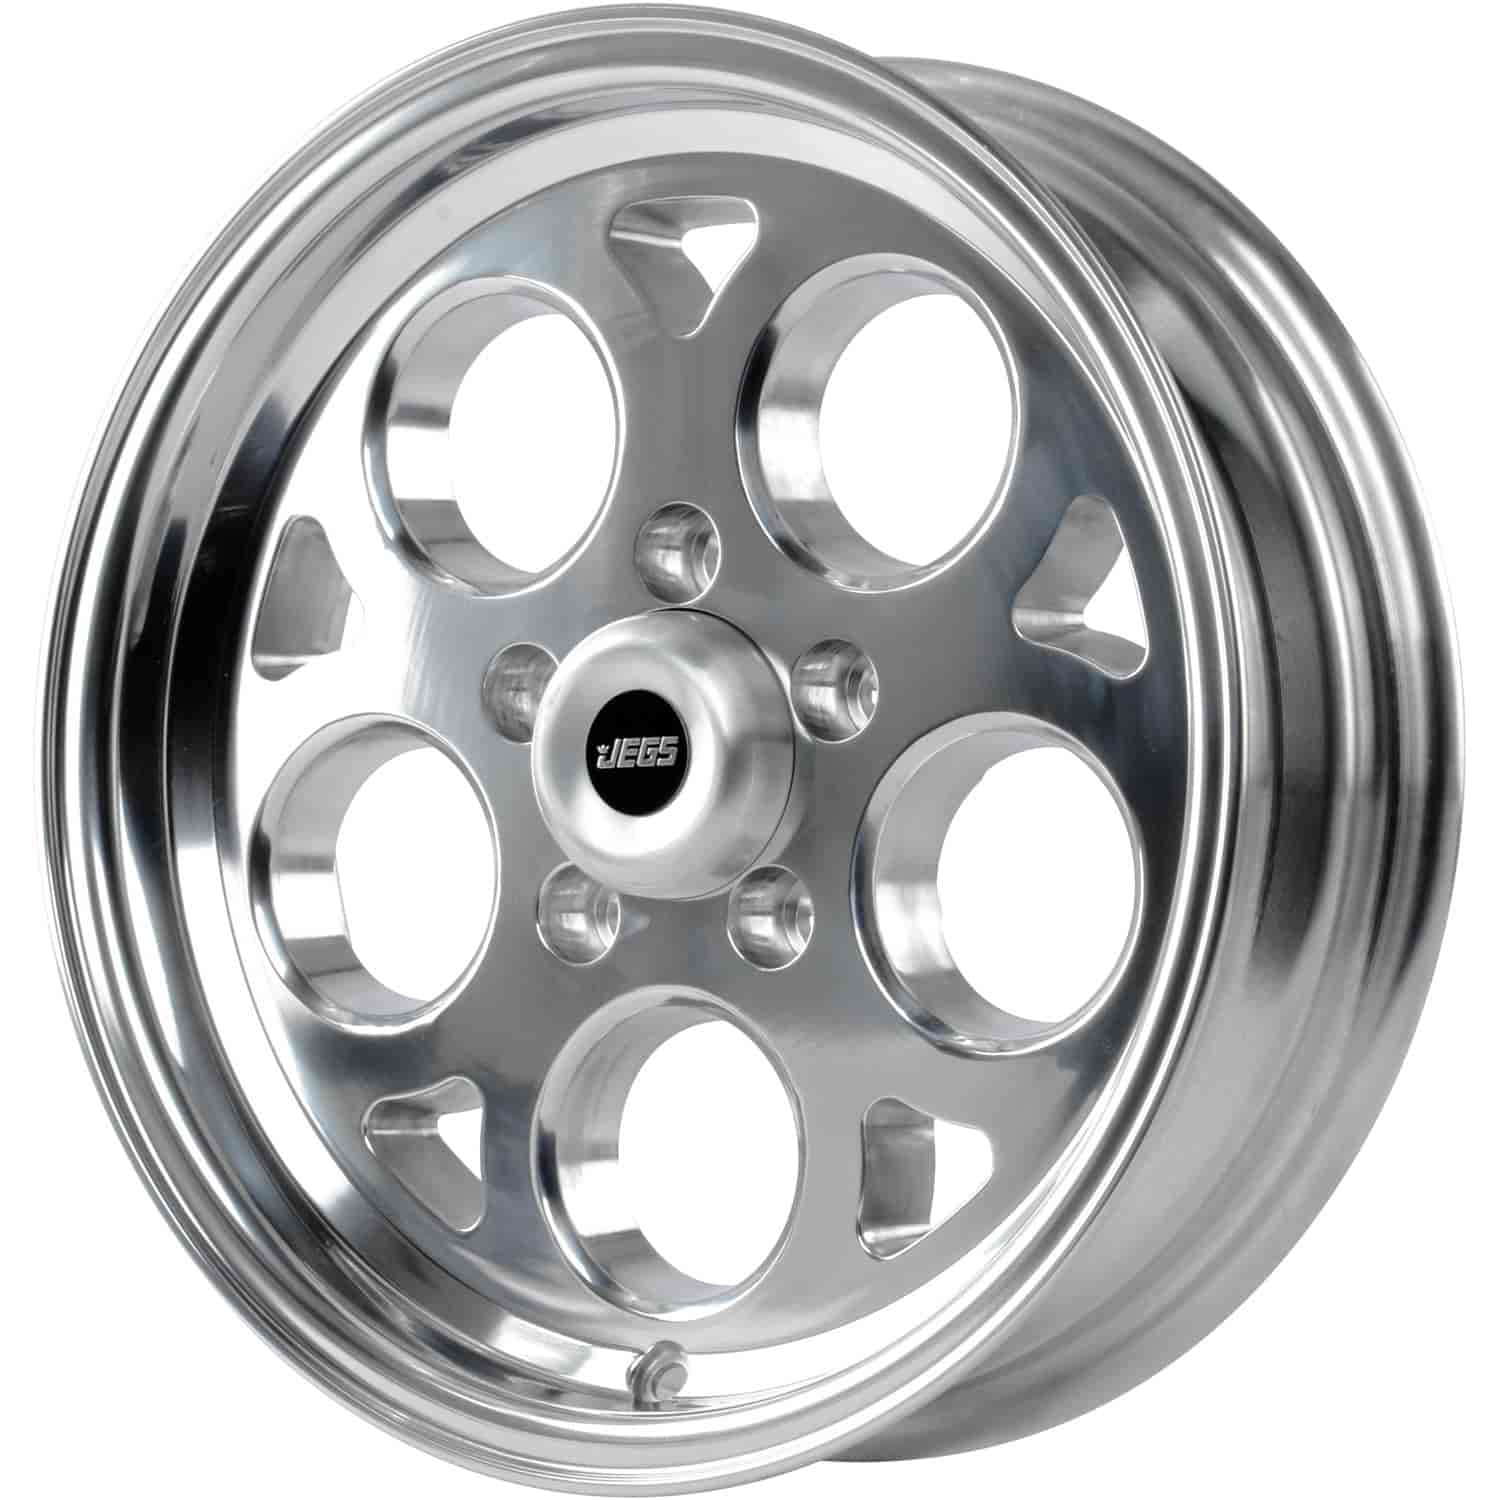 JEGS Performance Products SSR Mag Wheel Diameter & Width 15